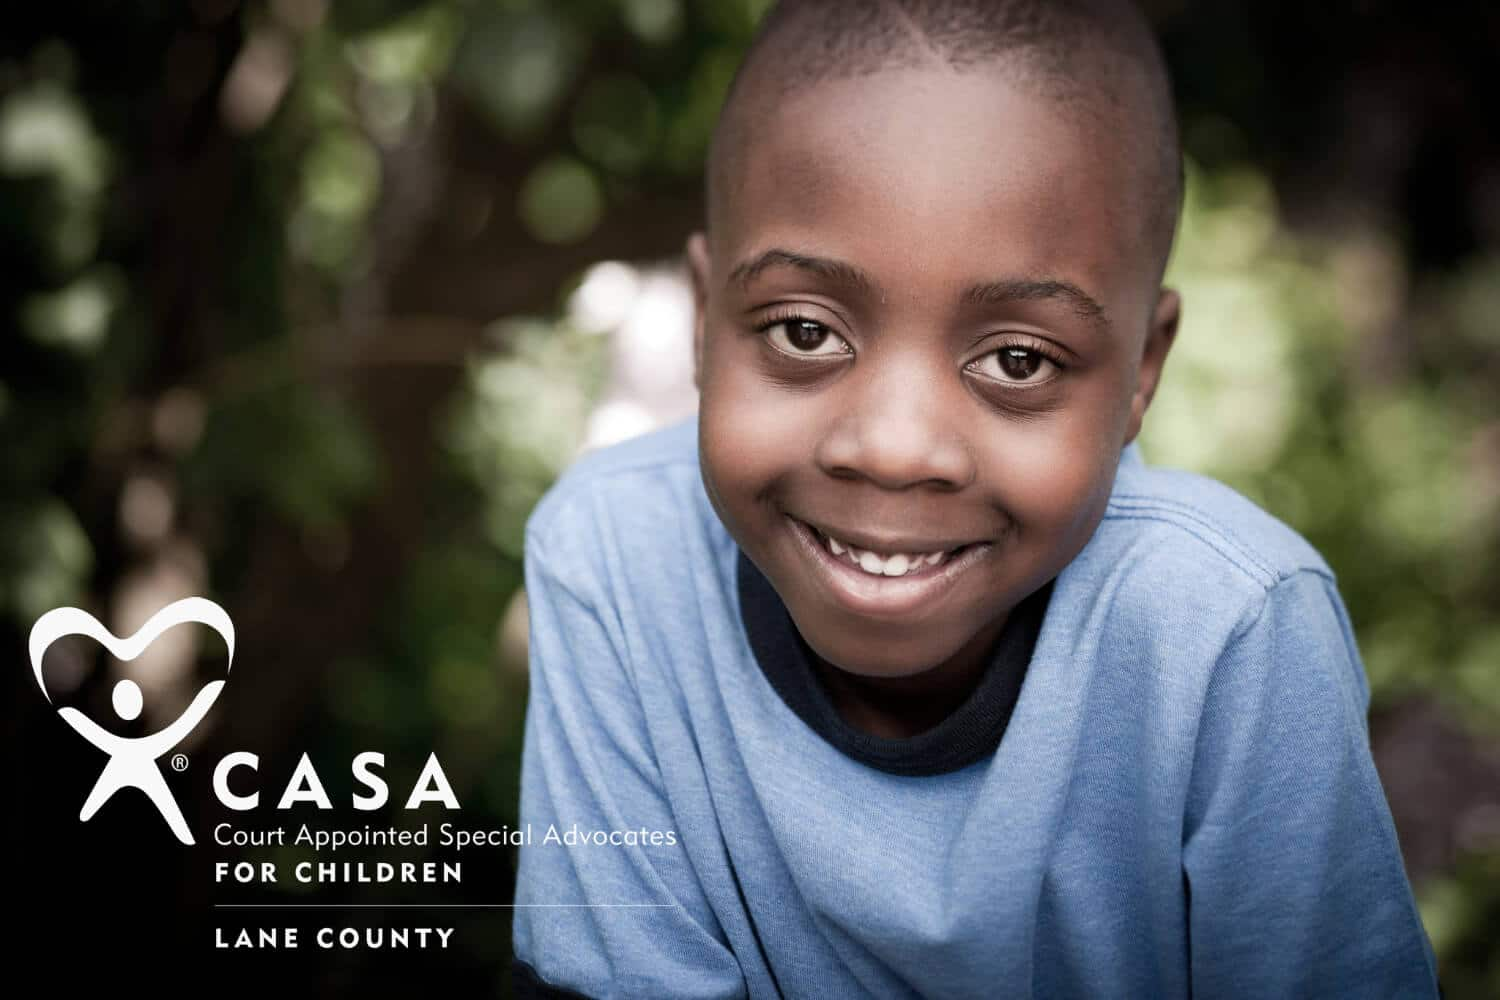 Donation to Court Appointed Special Advocates for Children (CASA) of Lane County, Eugene, OR